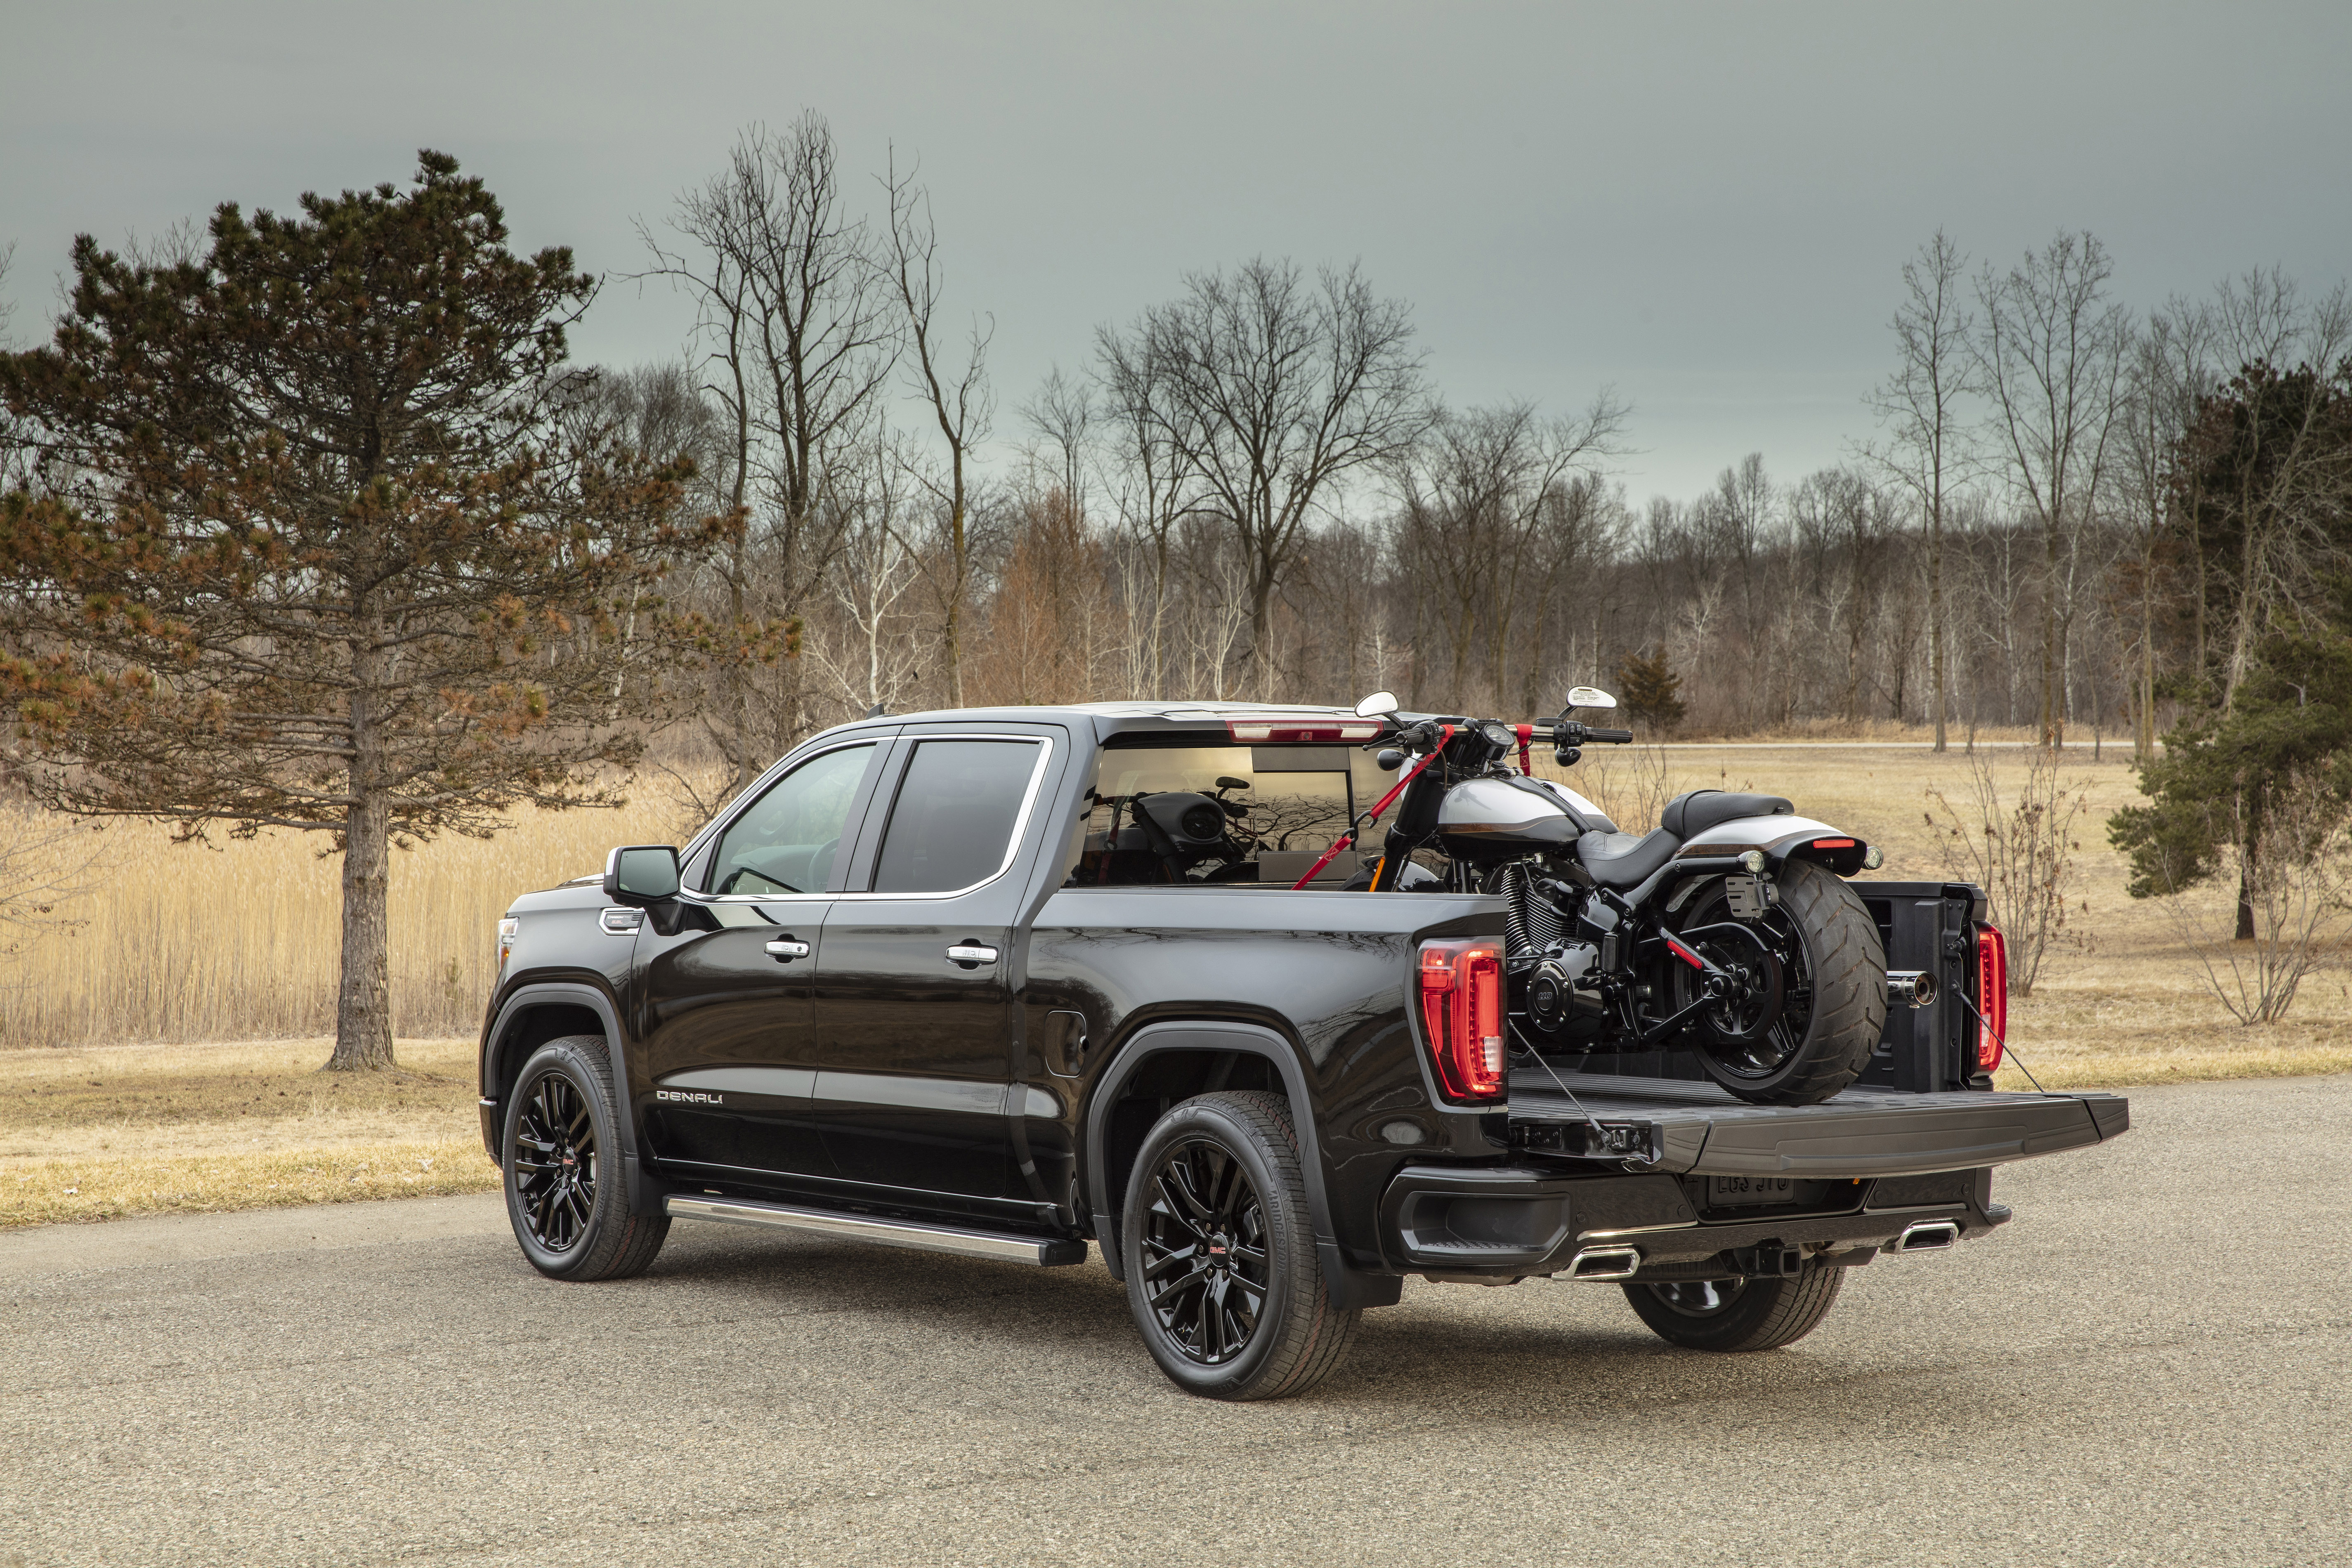 88 All New 2020 Gmc Backup Camera Prices for 2020 Gmc Backup Camera